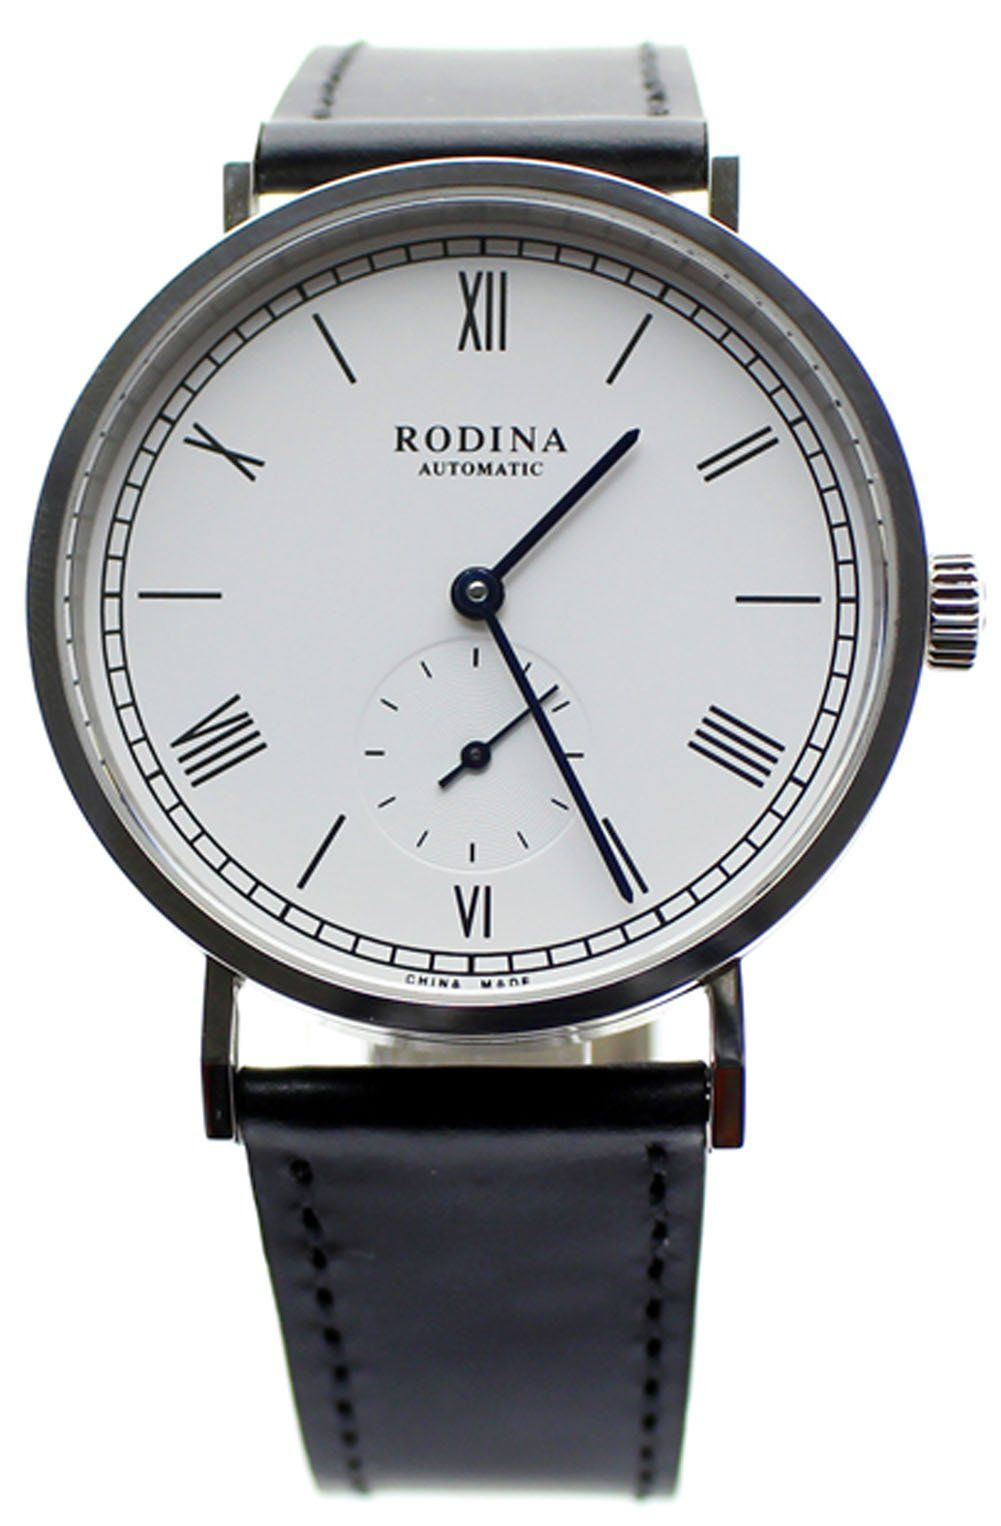 sale prices rodina shop reviews watches wristwatches brands in online for